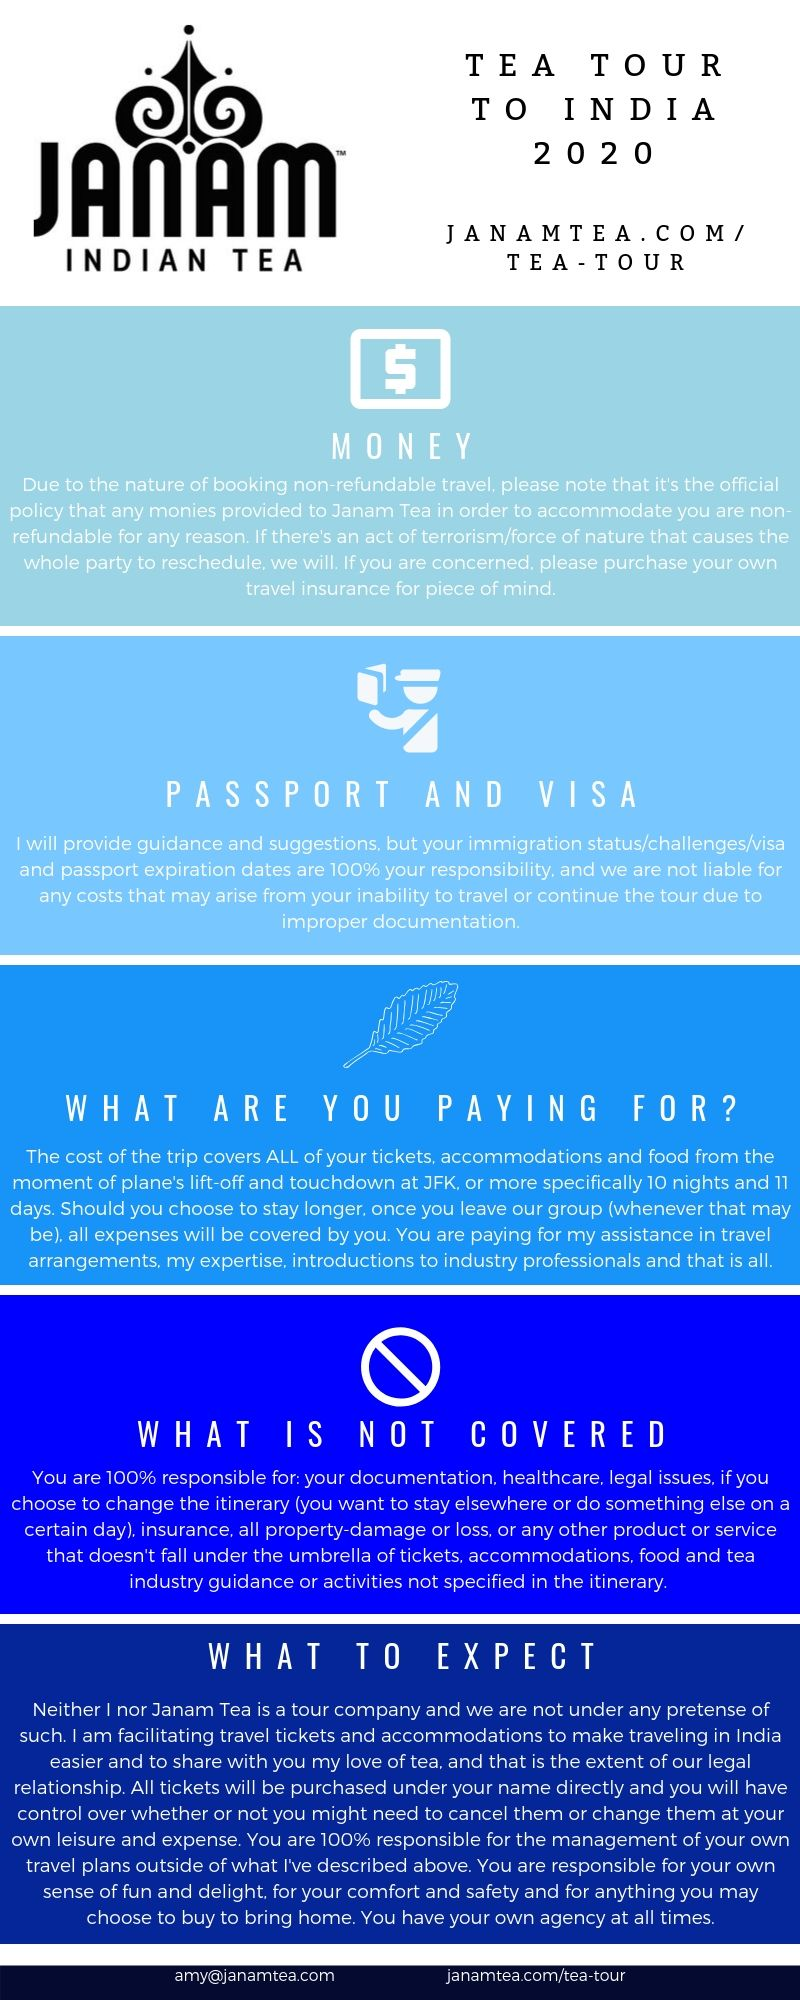 If there are any questions about policies, please do let me know. Prior to commencement of trip, each guest will sign a waiver of rights for reimbursement, to sue for damages to persons or property with clear understanding that travel to India is at your own risk.